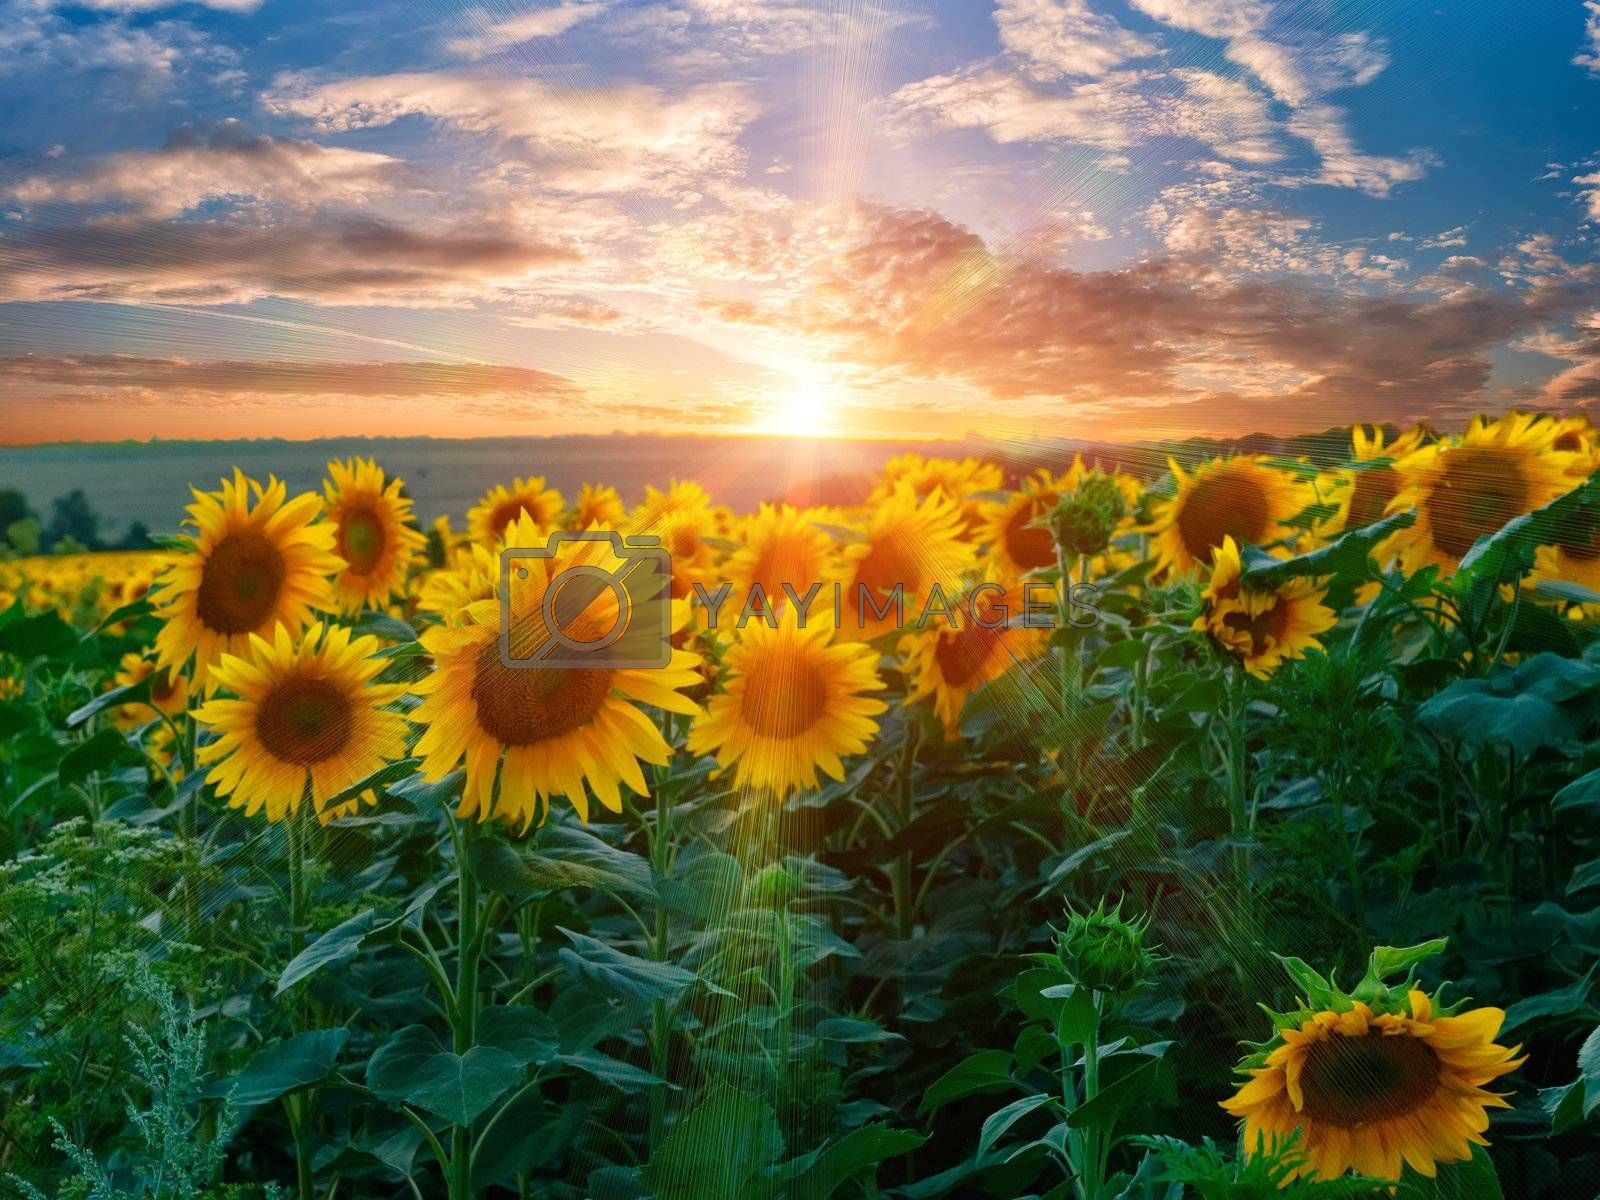 Summer beauty landscape with colorful sunset over sunflowers field